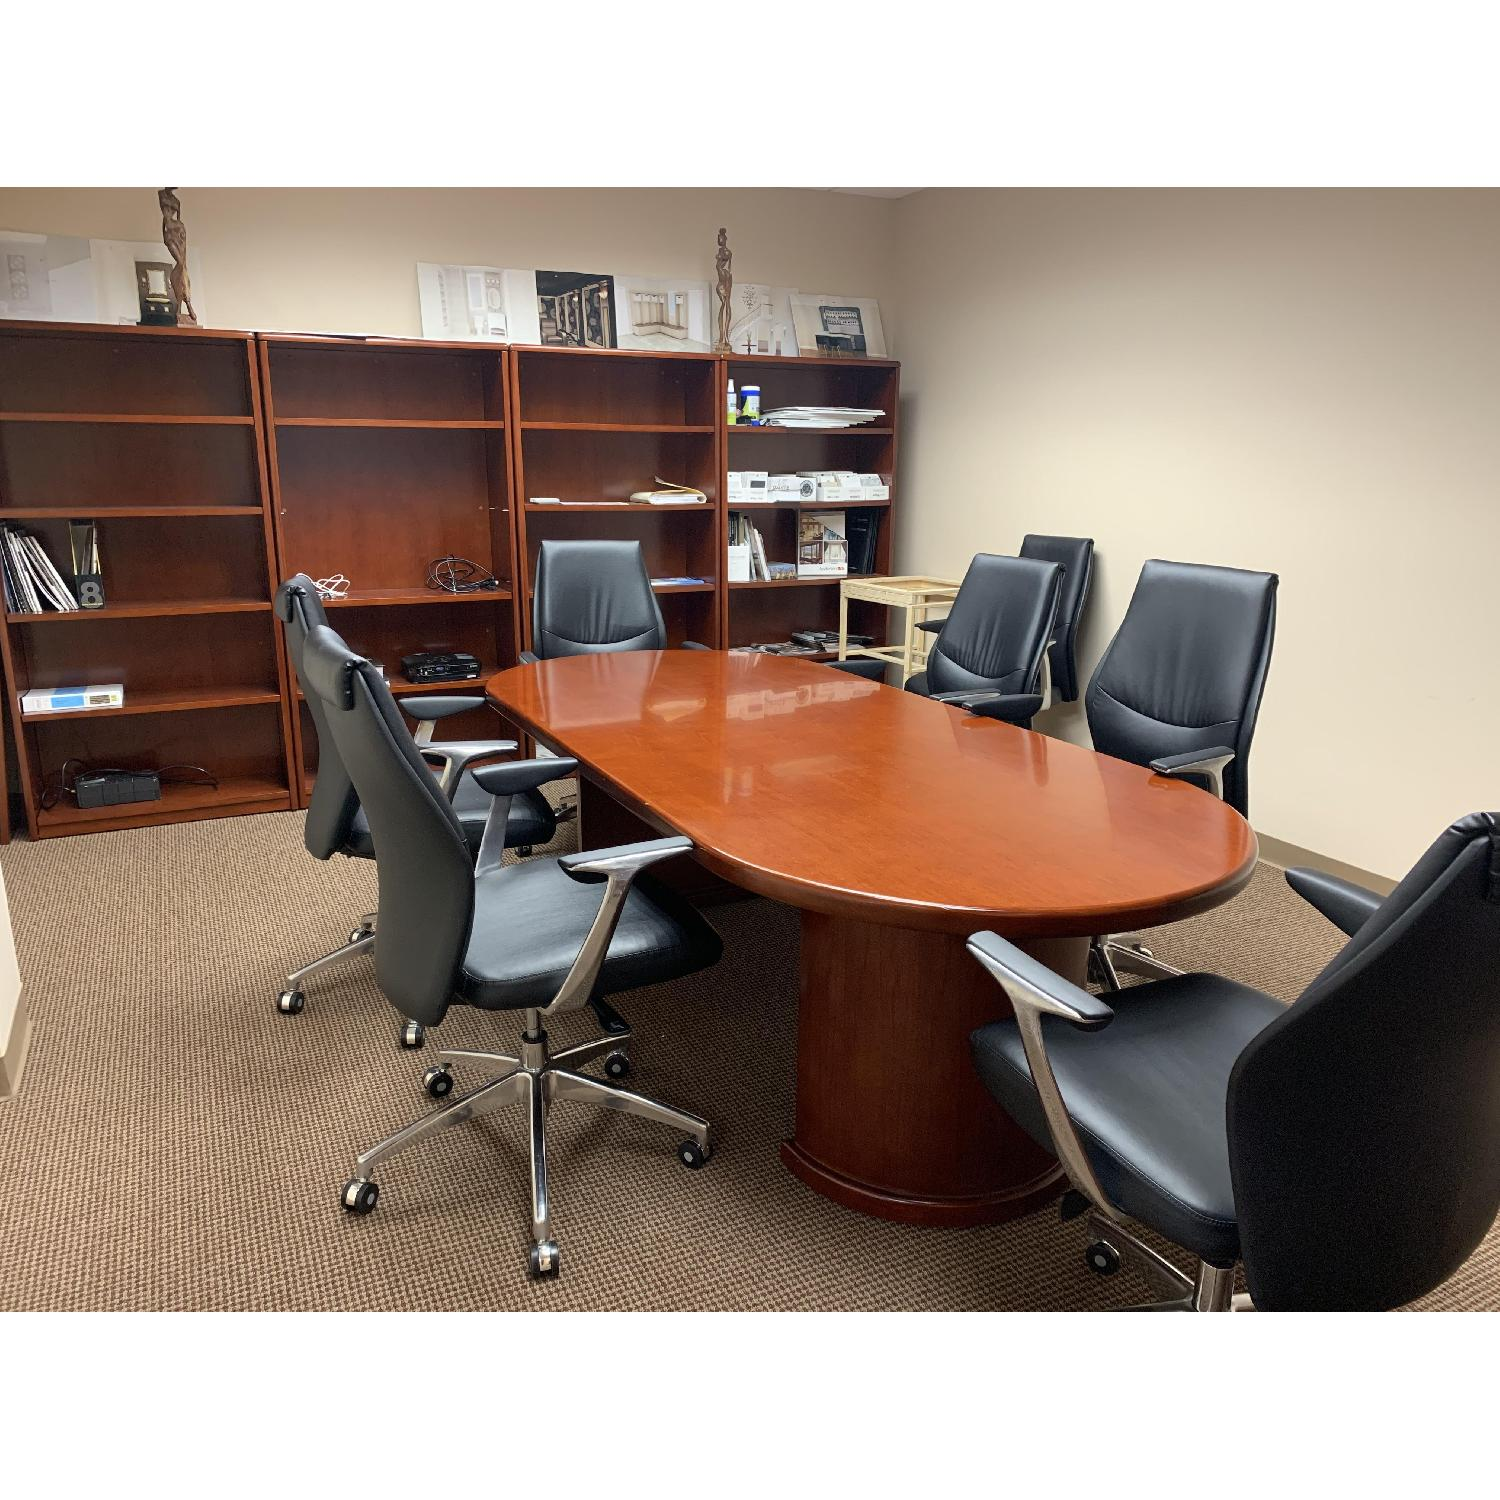 Conference Table w/ 6 Chairs - image-0